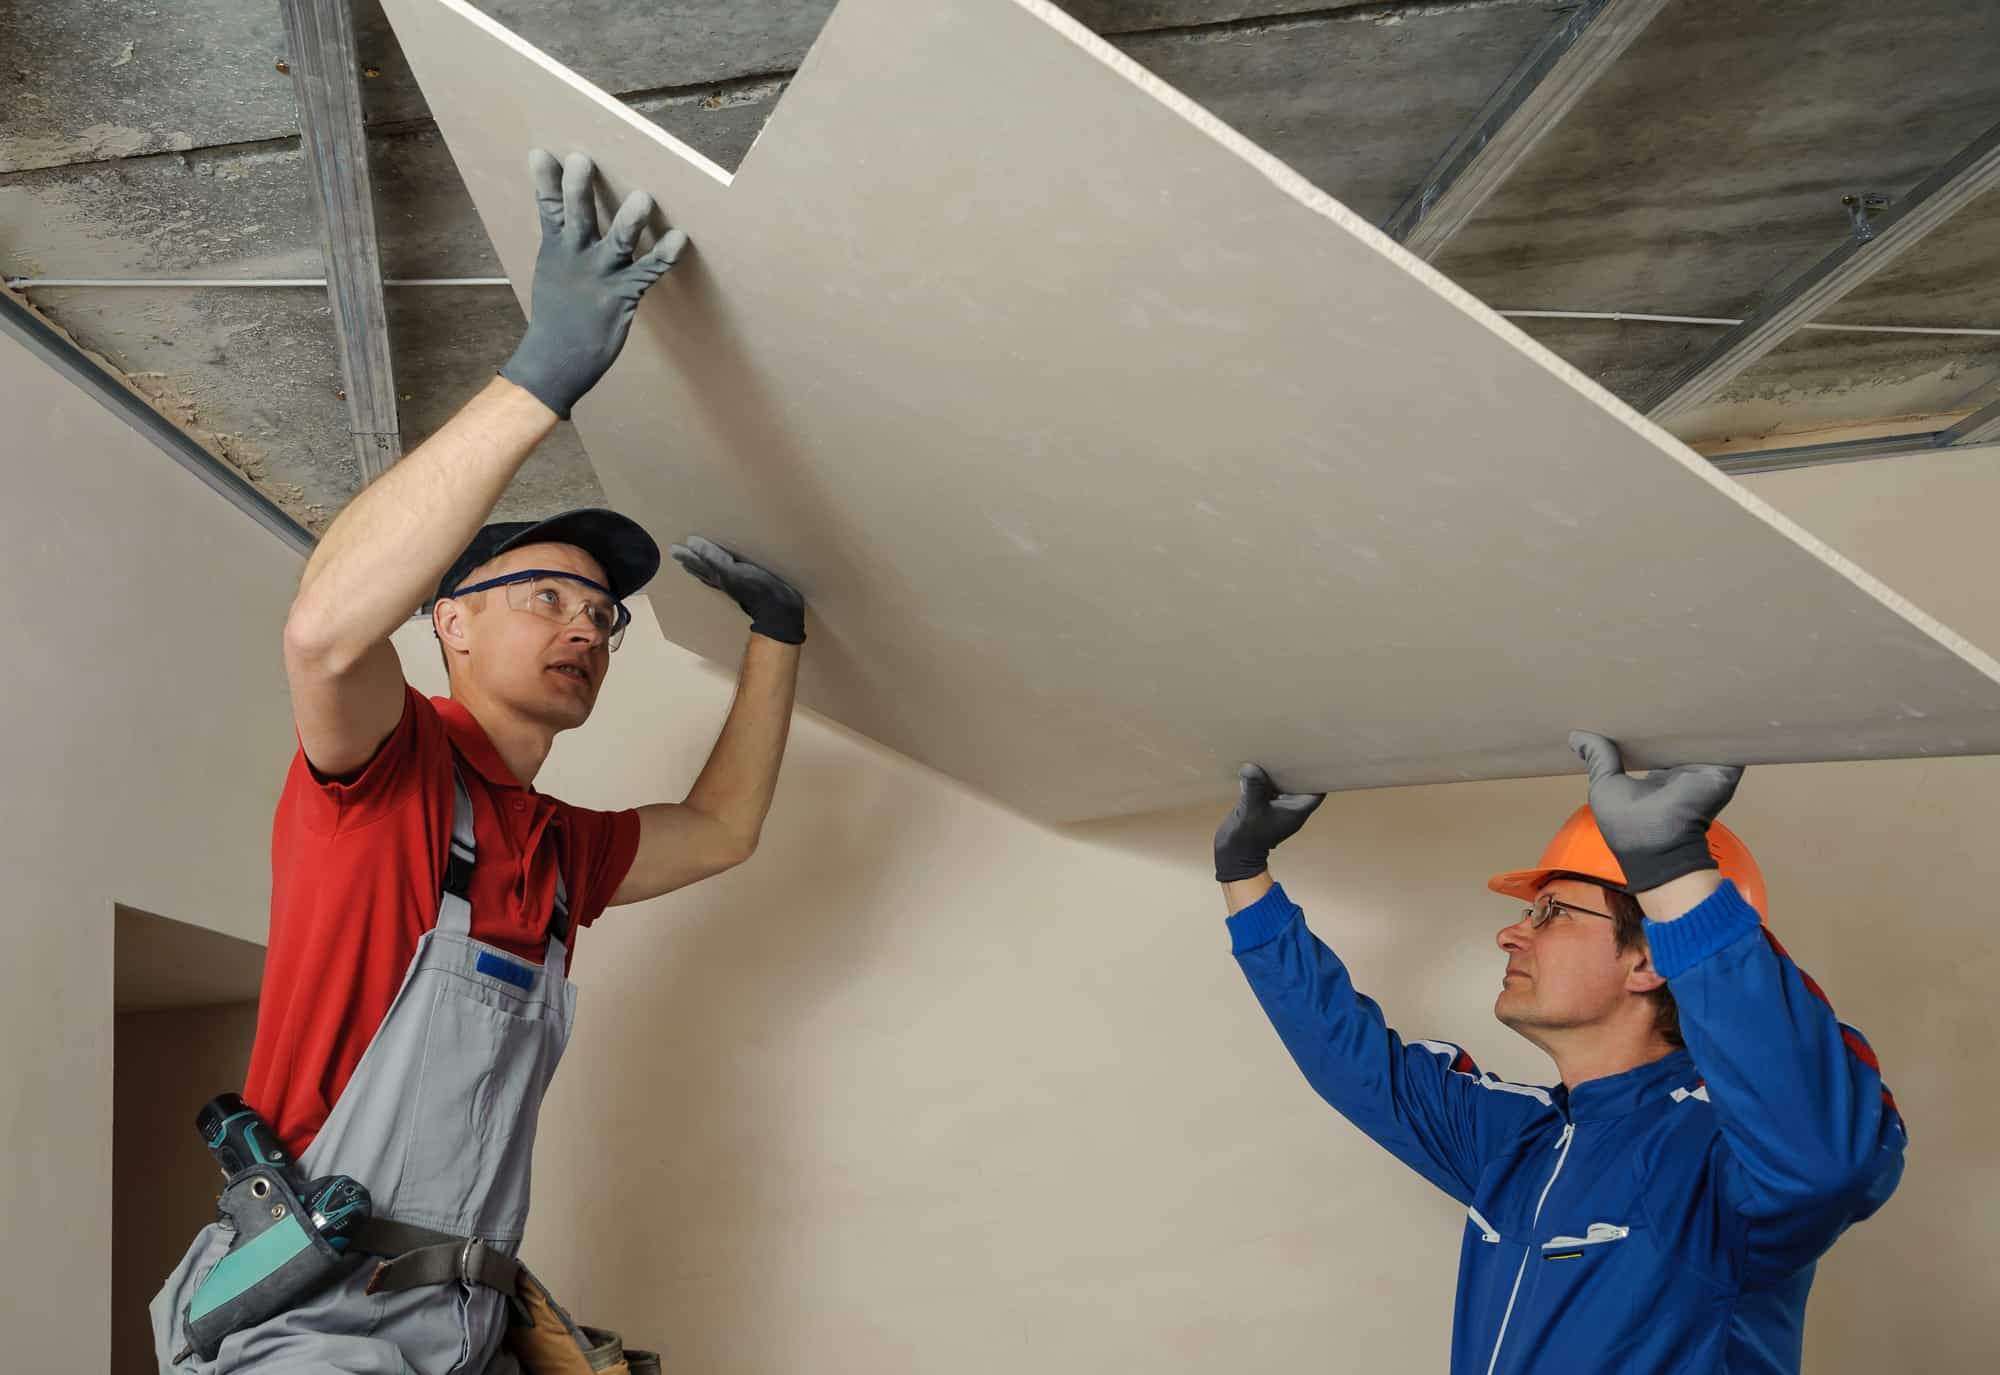 Installers moving drywall into position on a ceiling